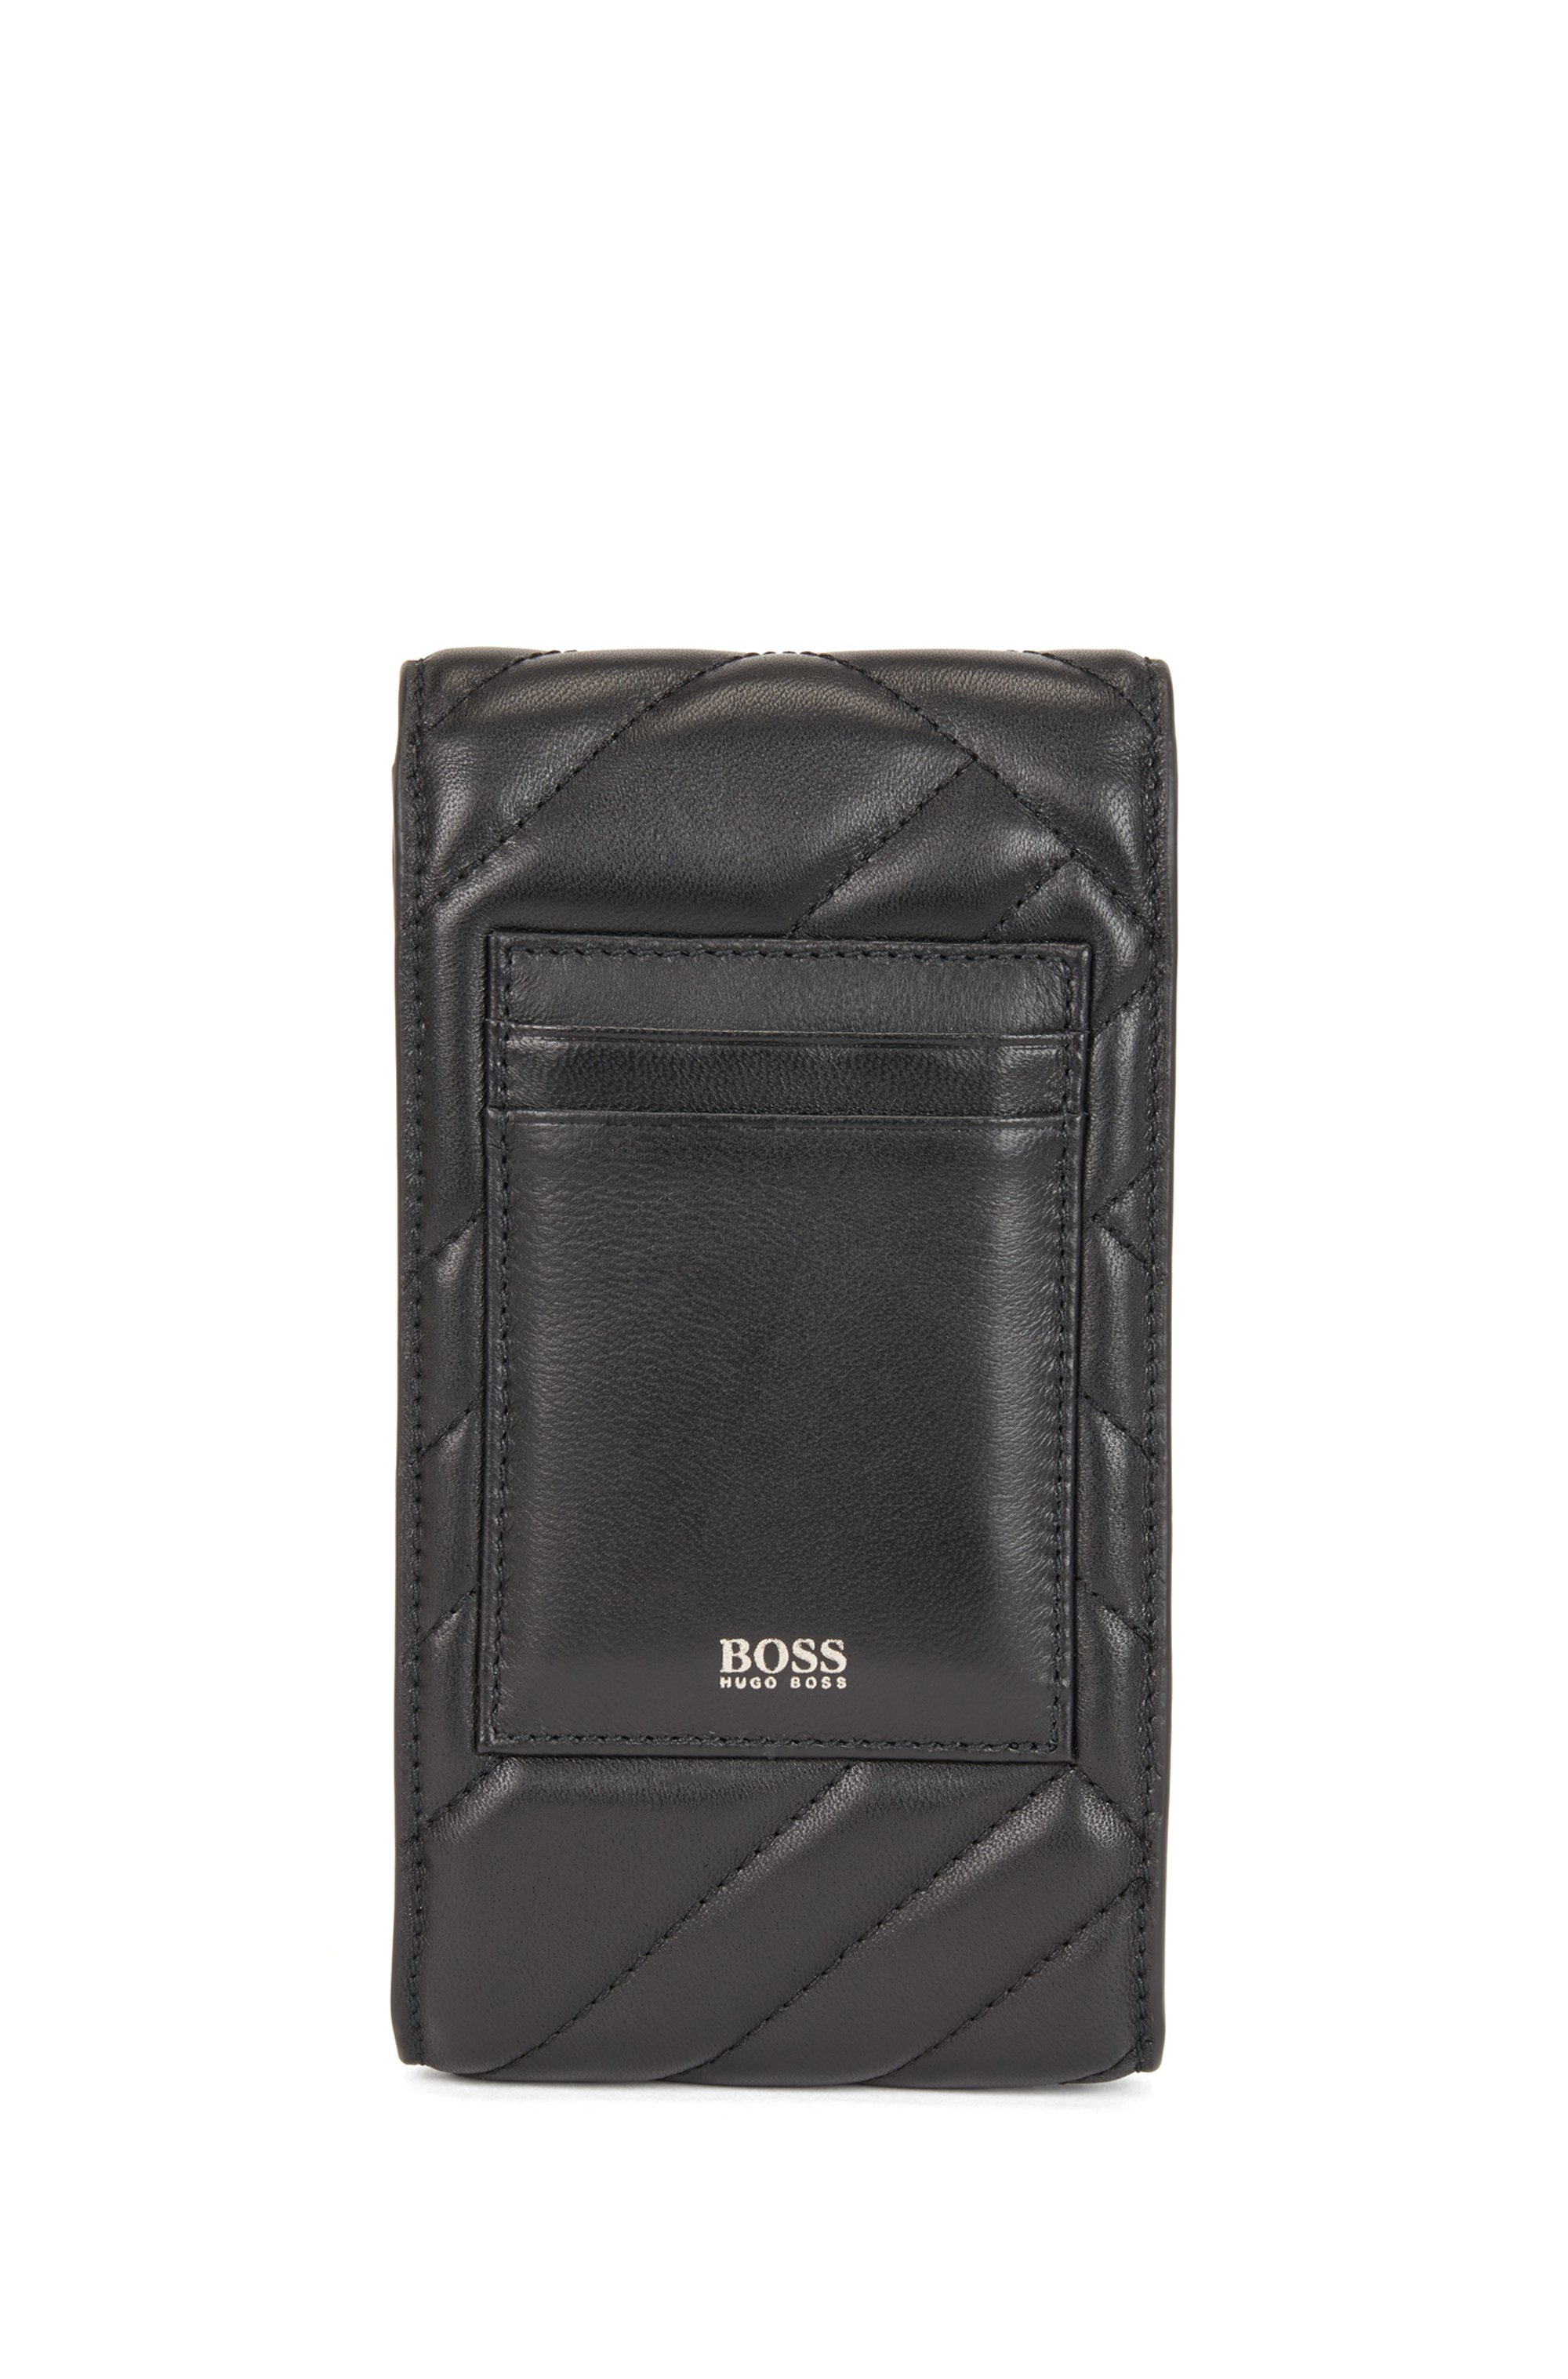 Quilted nappa-leather phone holder with chain strap